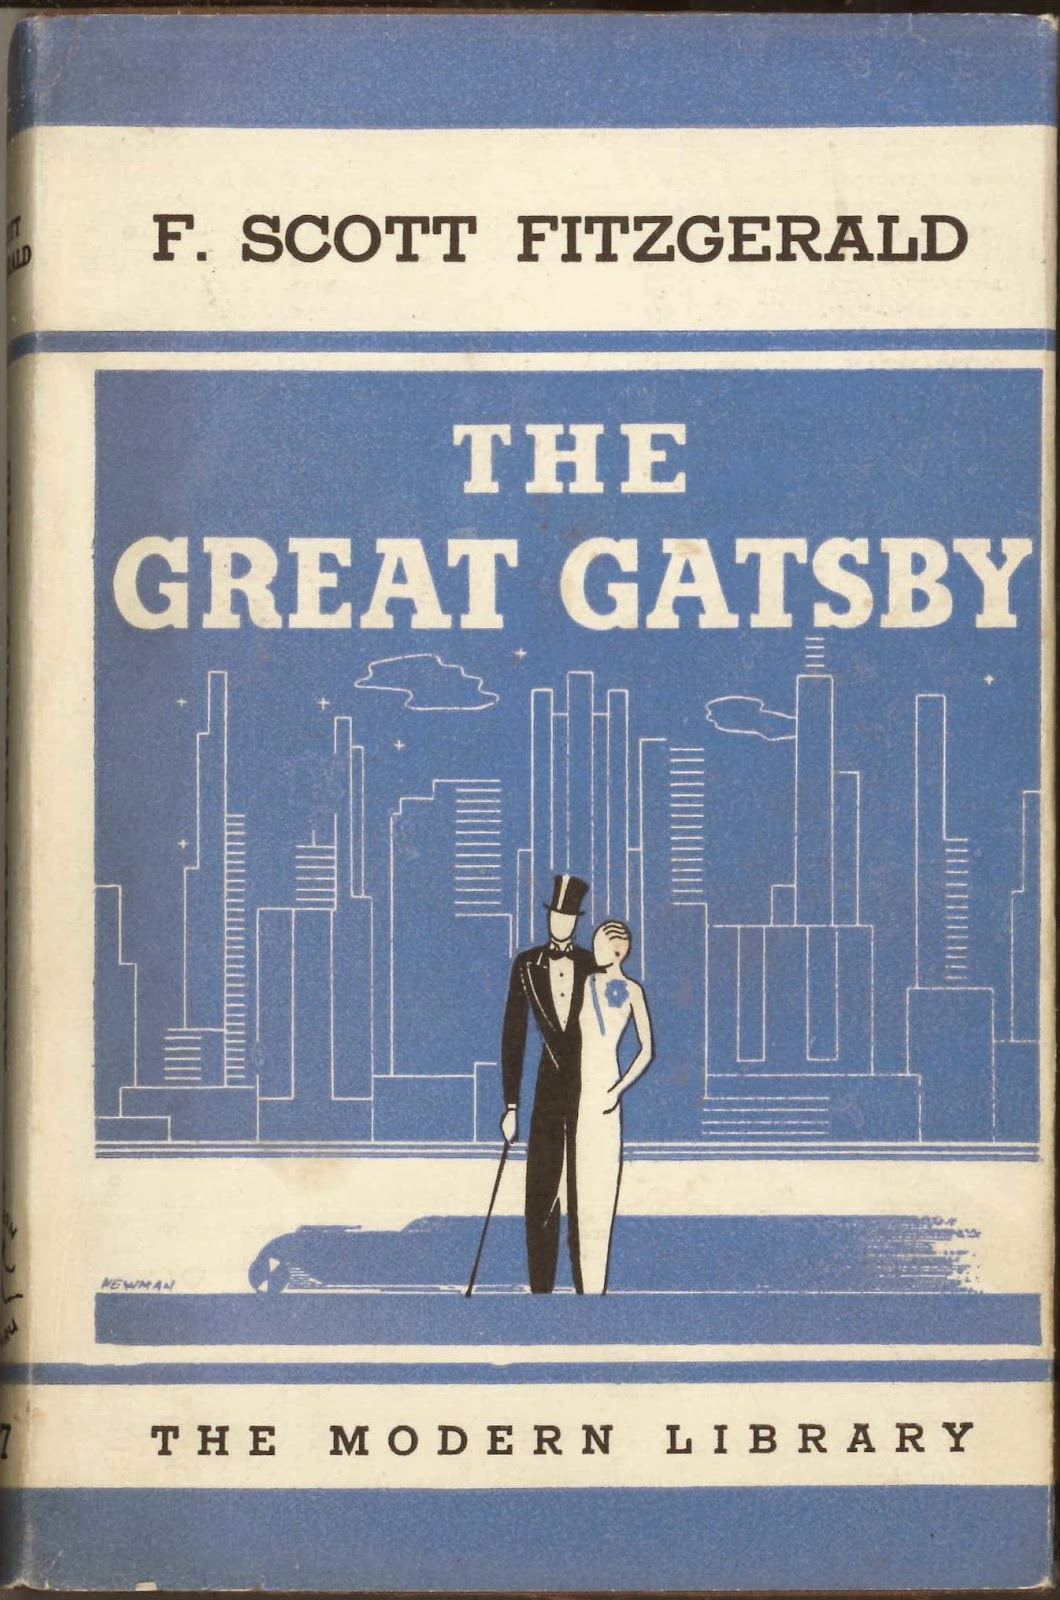 A Modern Library edition of The Great Gatsby.